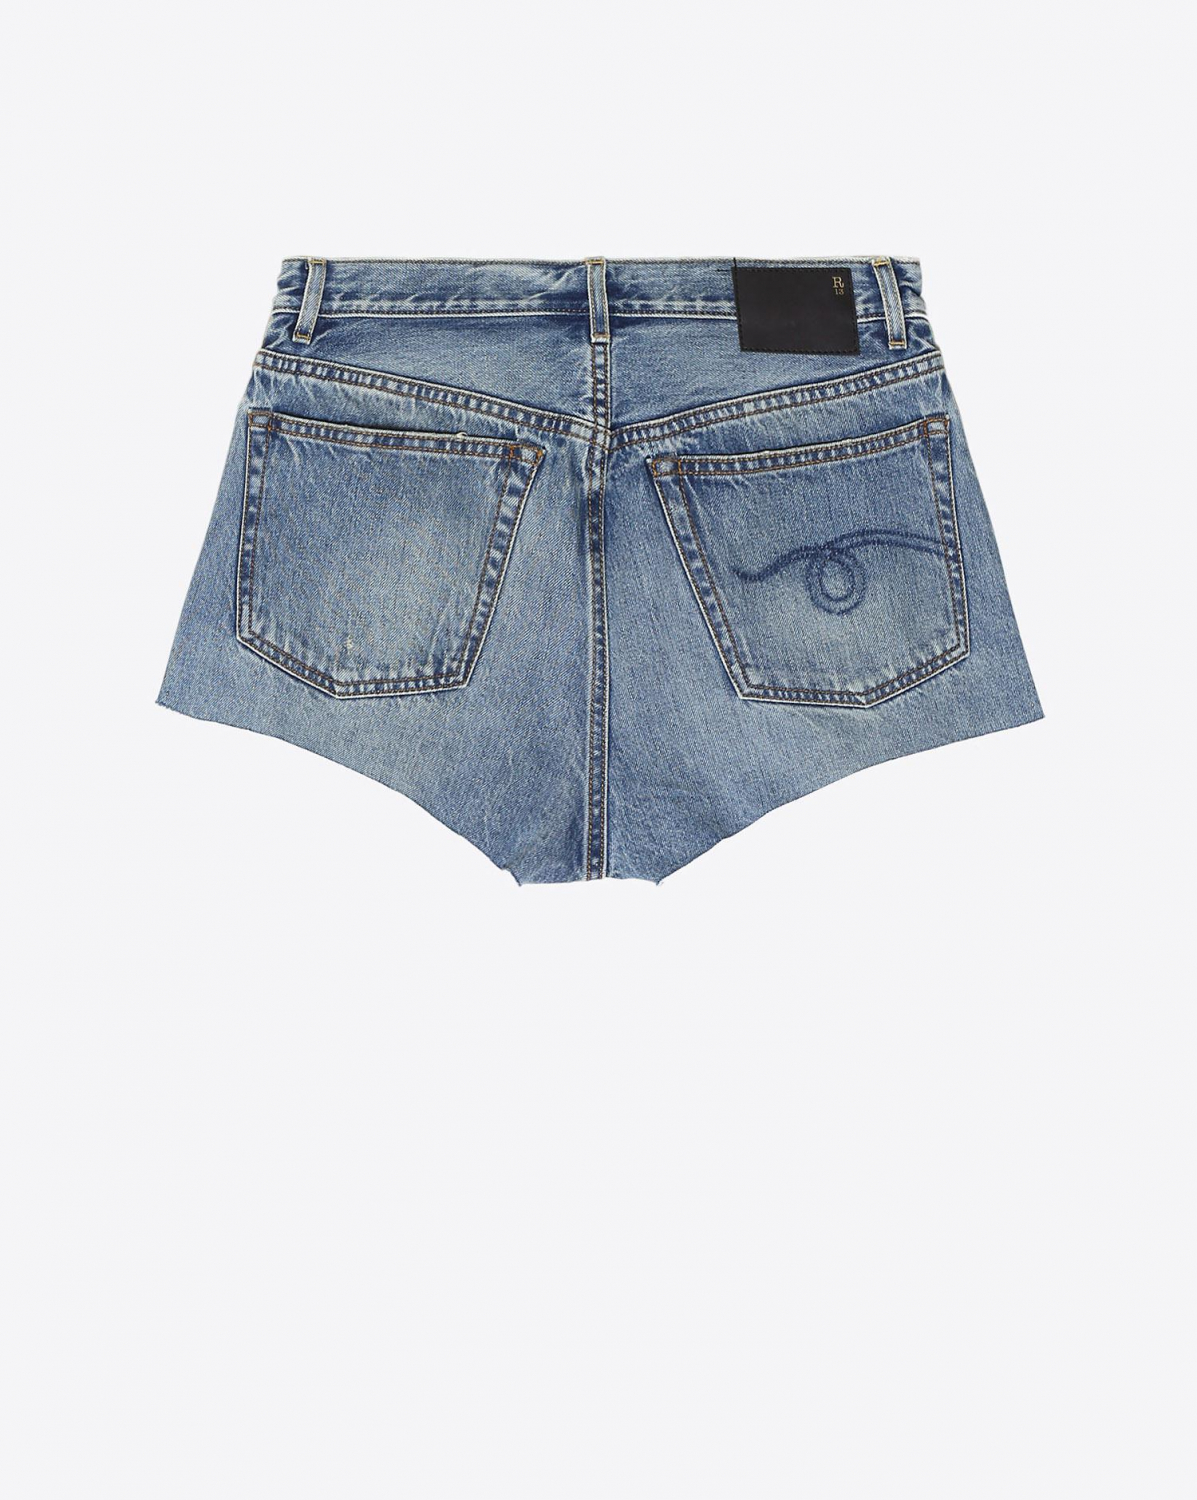 R13 Denim Collection Luke Short - Jasper